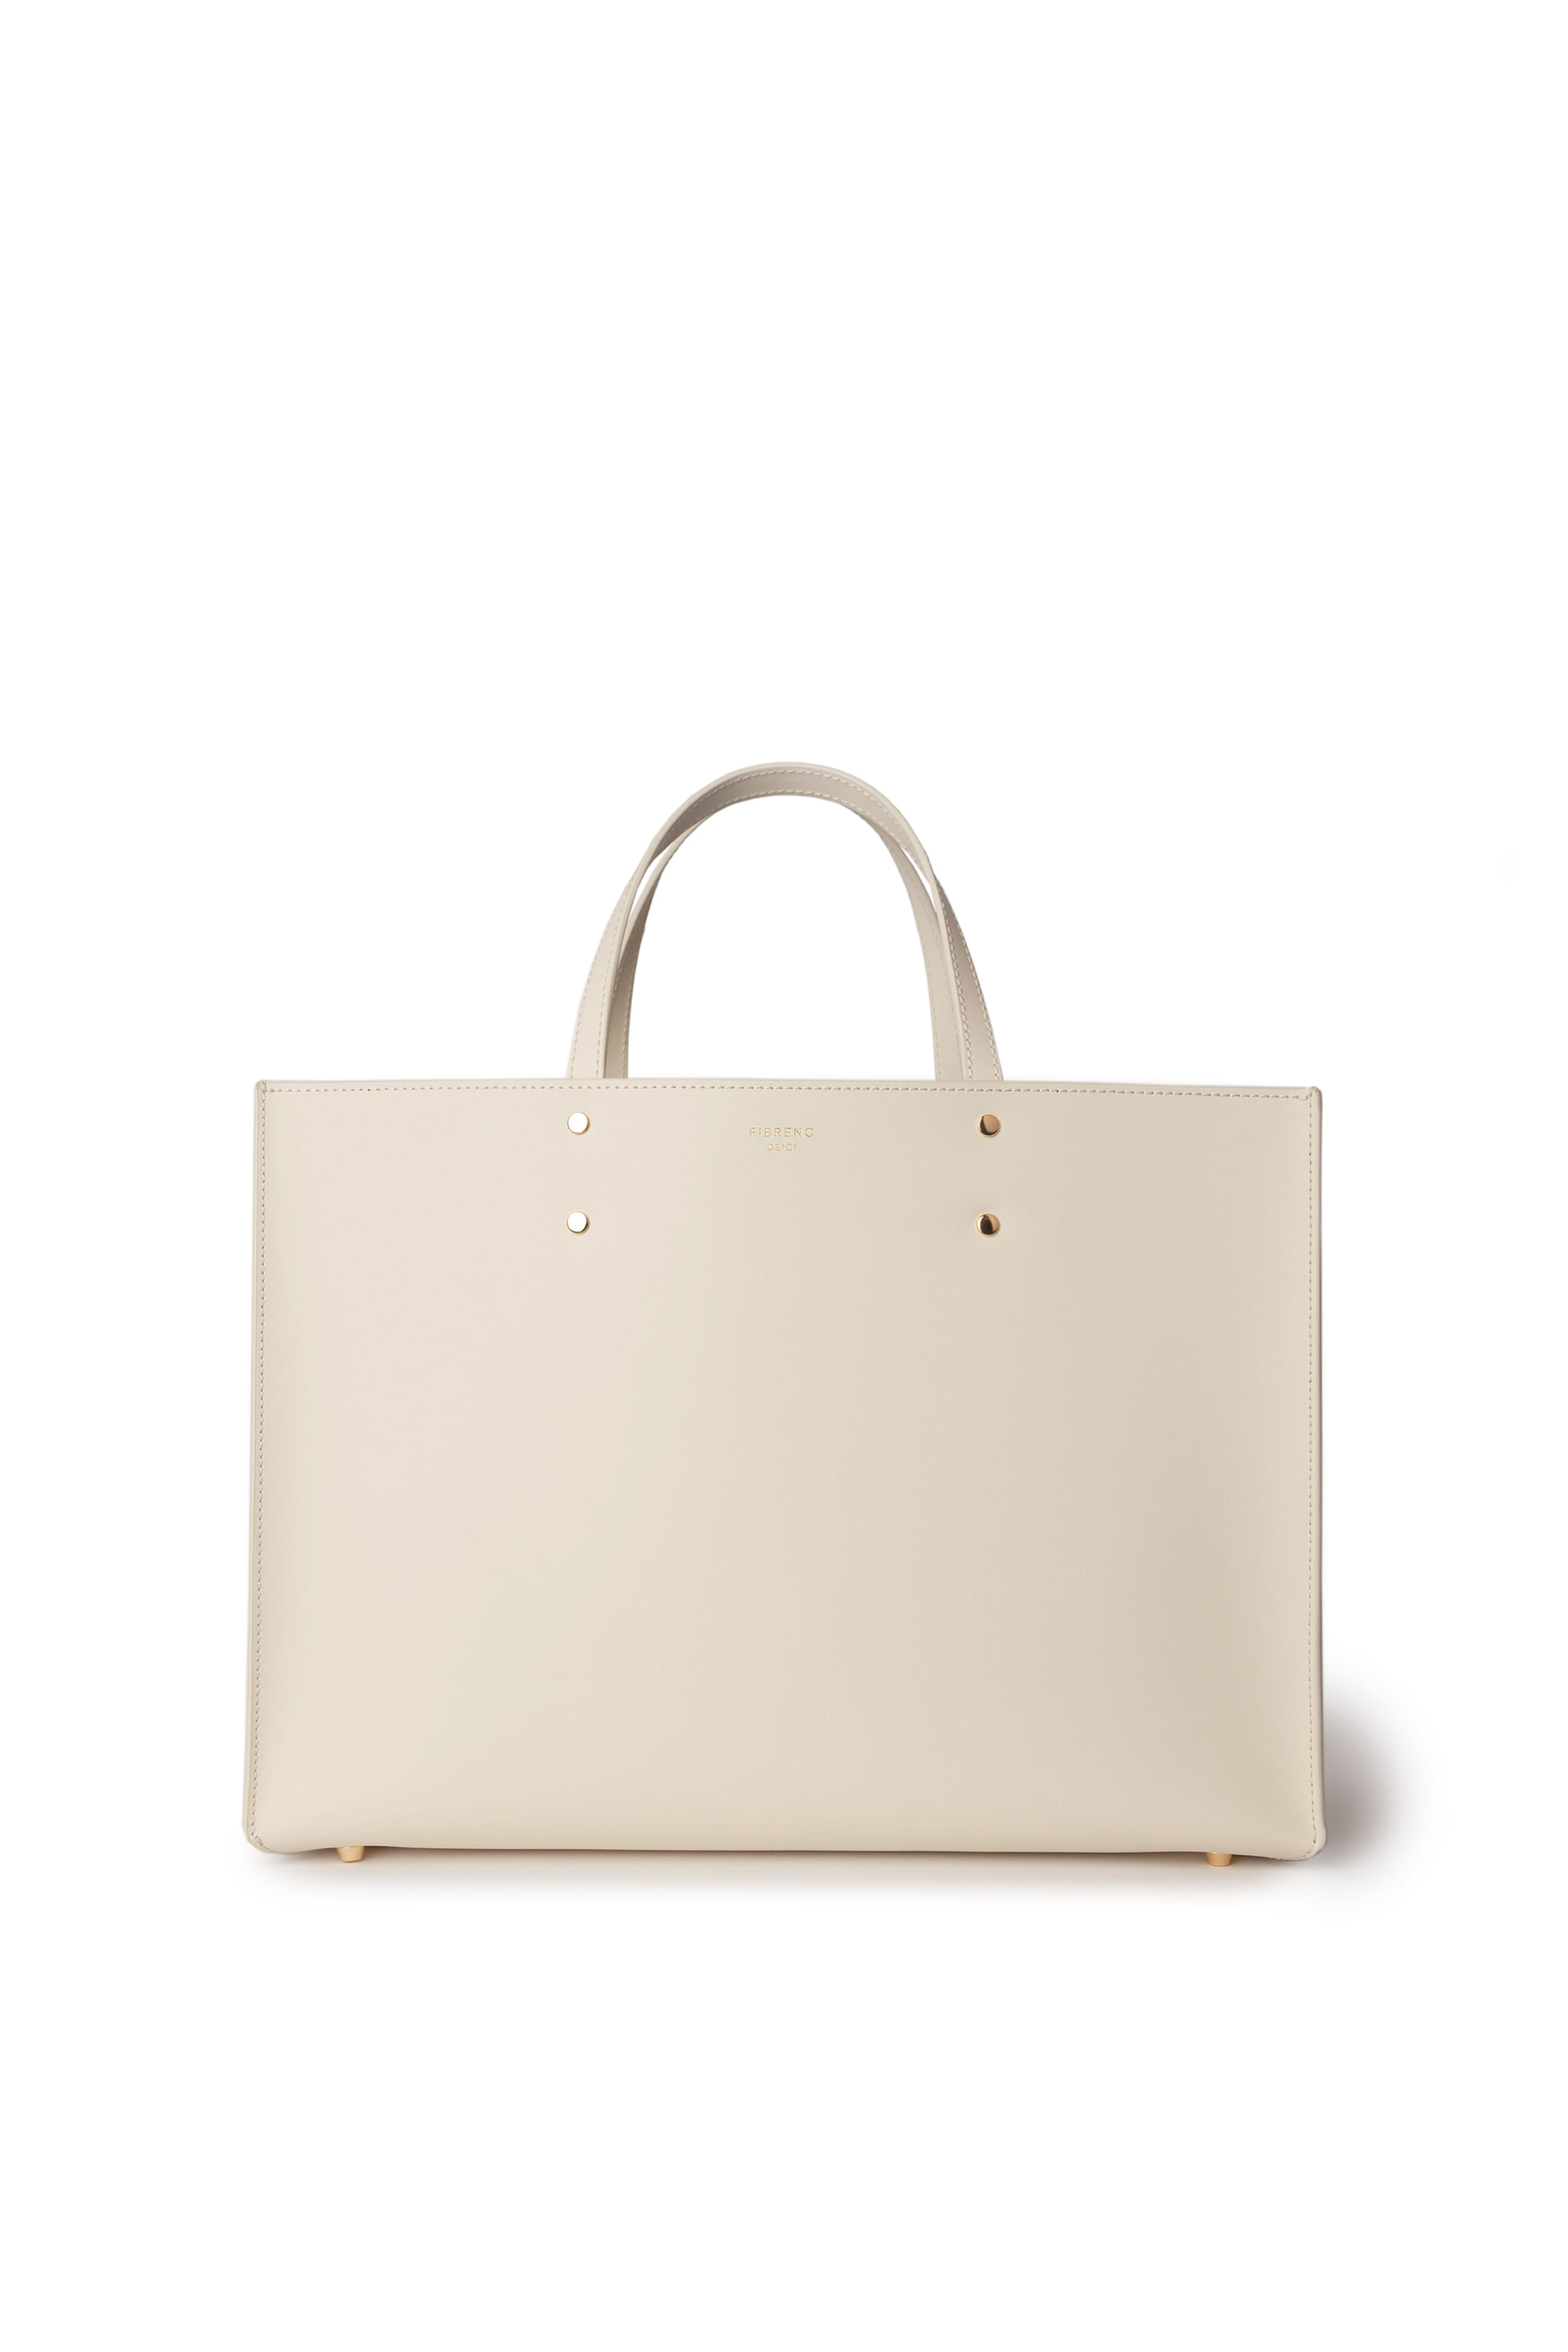 [10% OFF] DEICI GRANDE BAG 25 Ivory